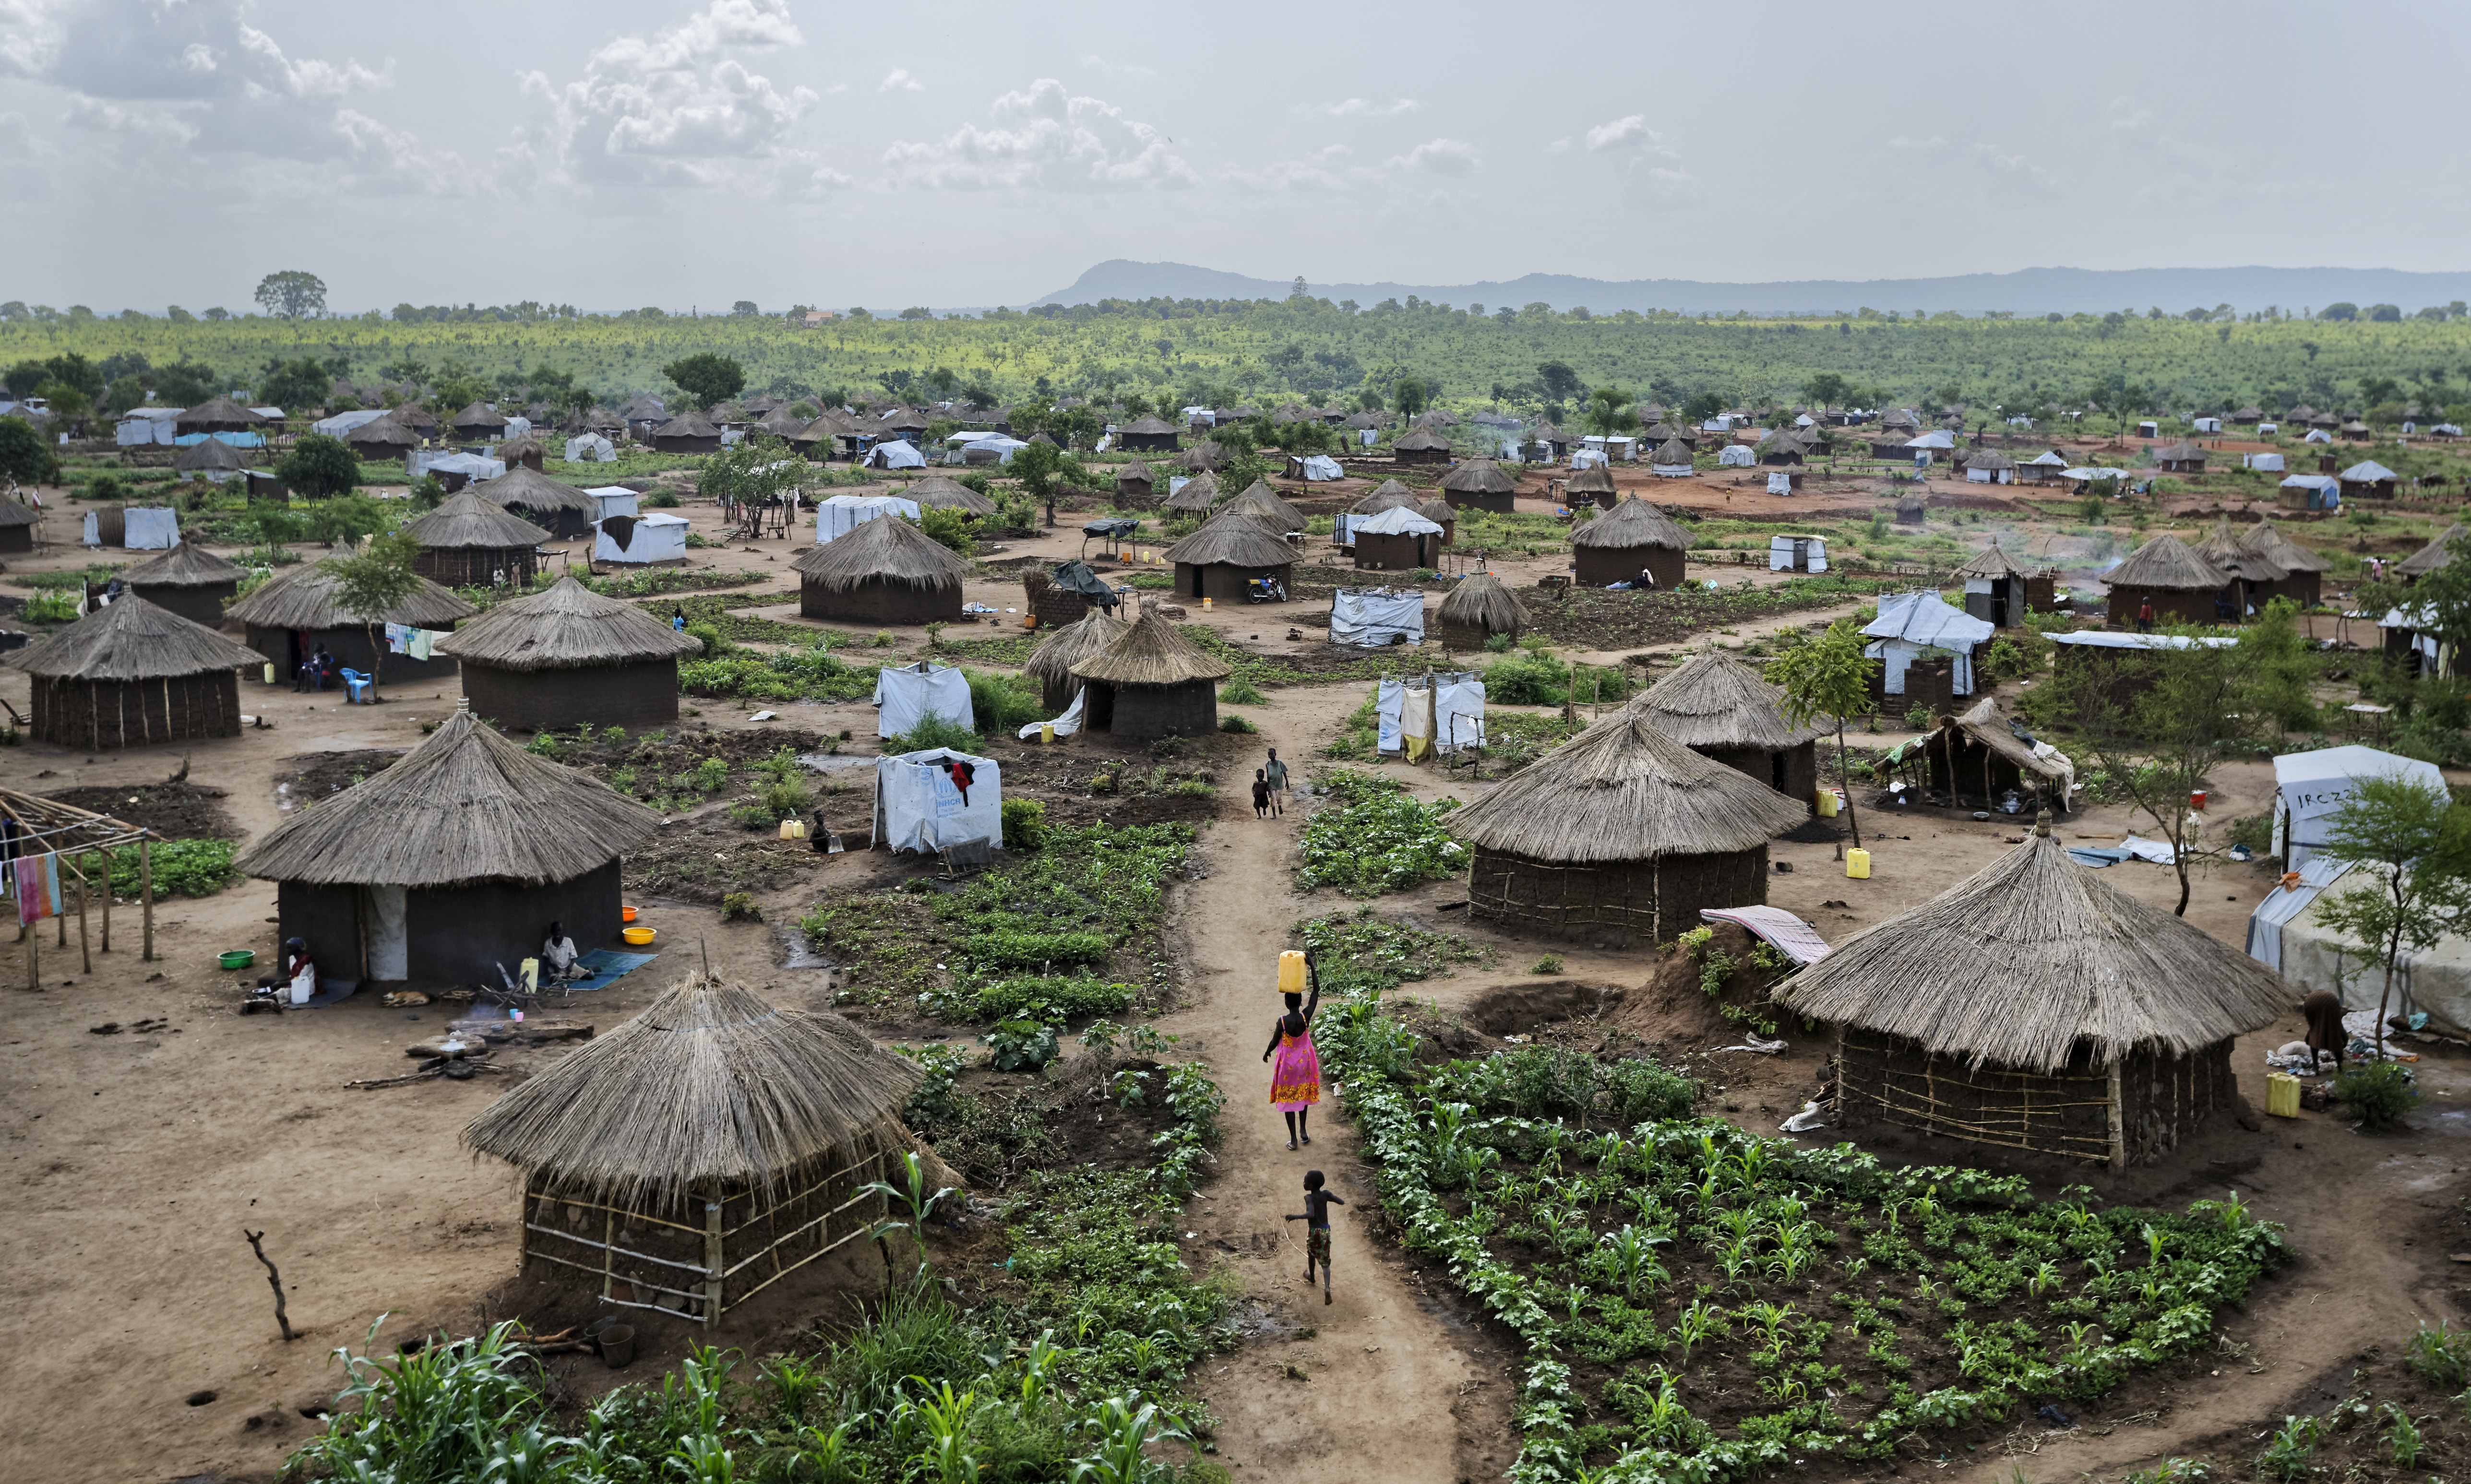 Women and children return to the sprawling complex of mud-brick houses and tents that makes up the Bidi Bidi refugee settlement in northern Uganda on June 9, 2017. The number of South Sudanese refugees sheltering in Uganda has reached 1 million, the United Nations said in August, a grim milestone in what has become the world's fastest-growing refugee crisis. (AP Photo/Ben Curtis)